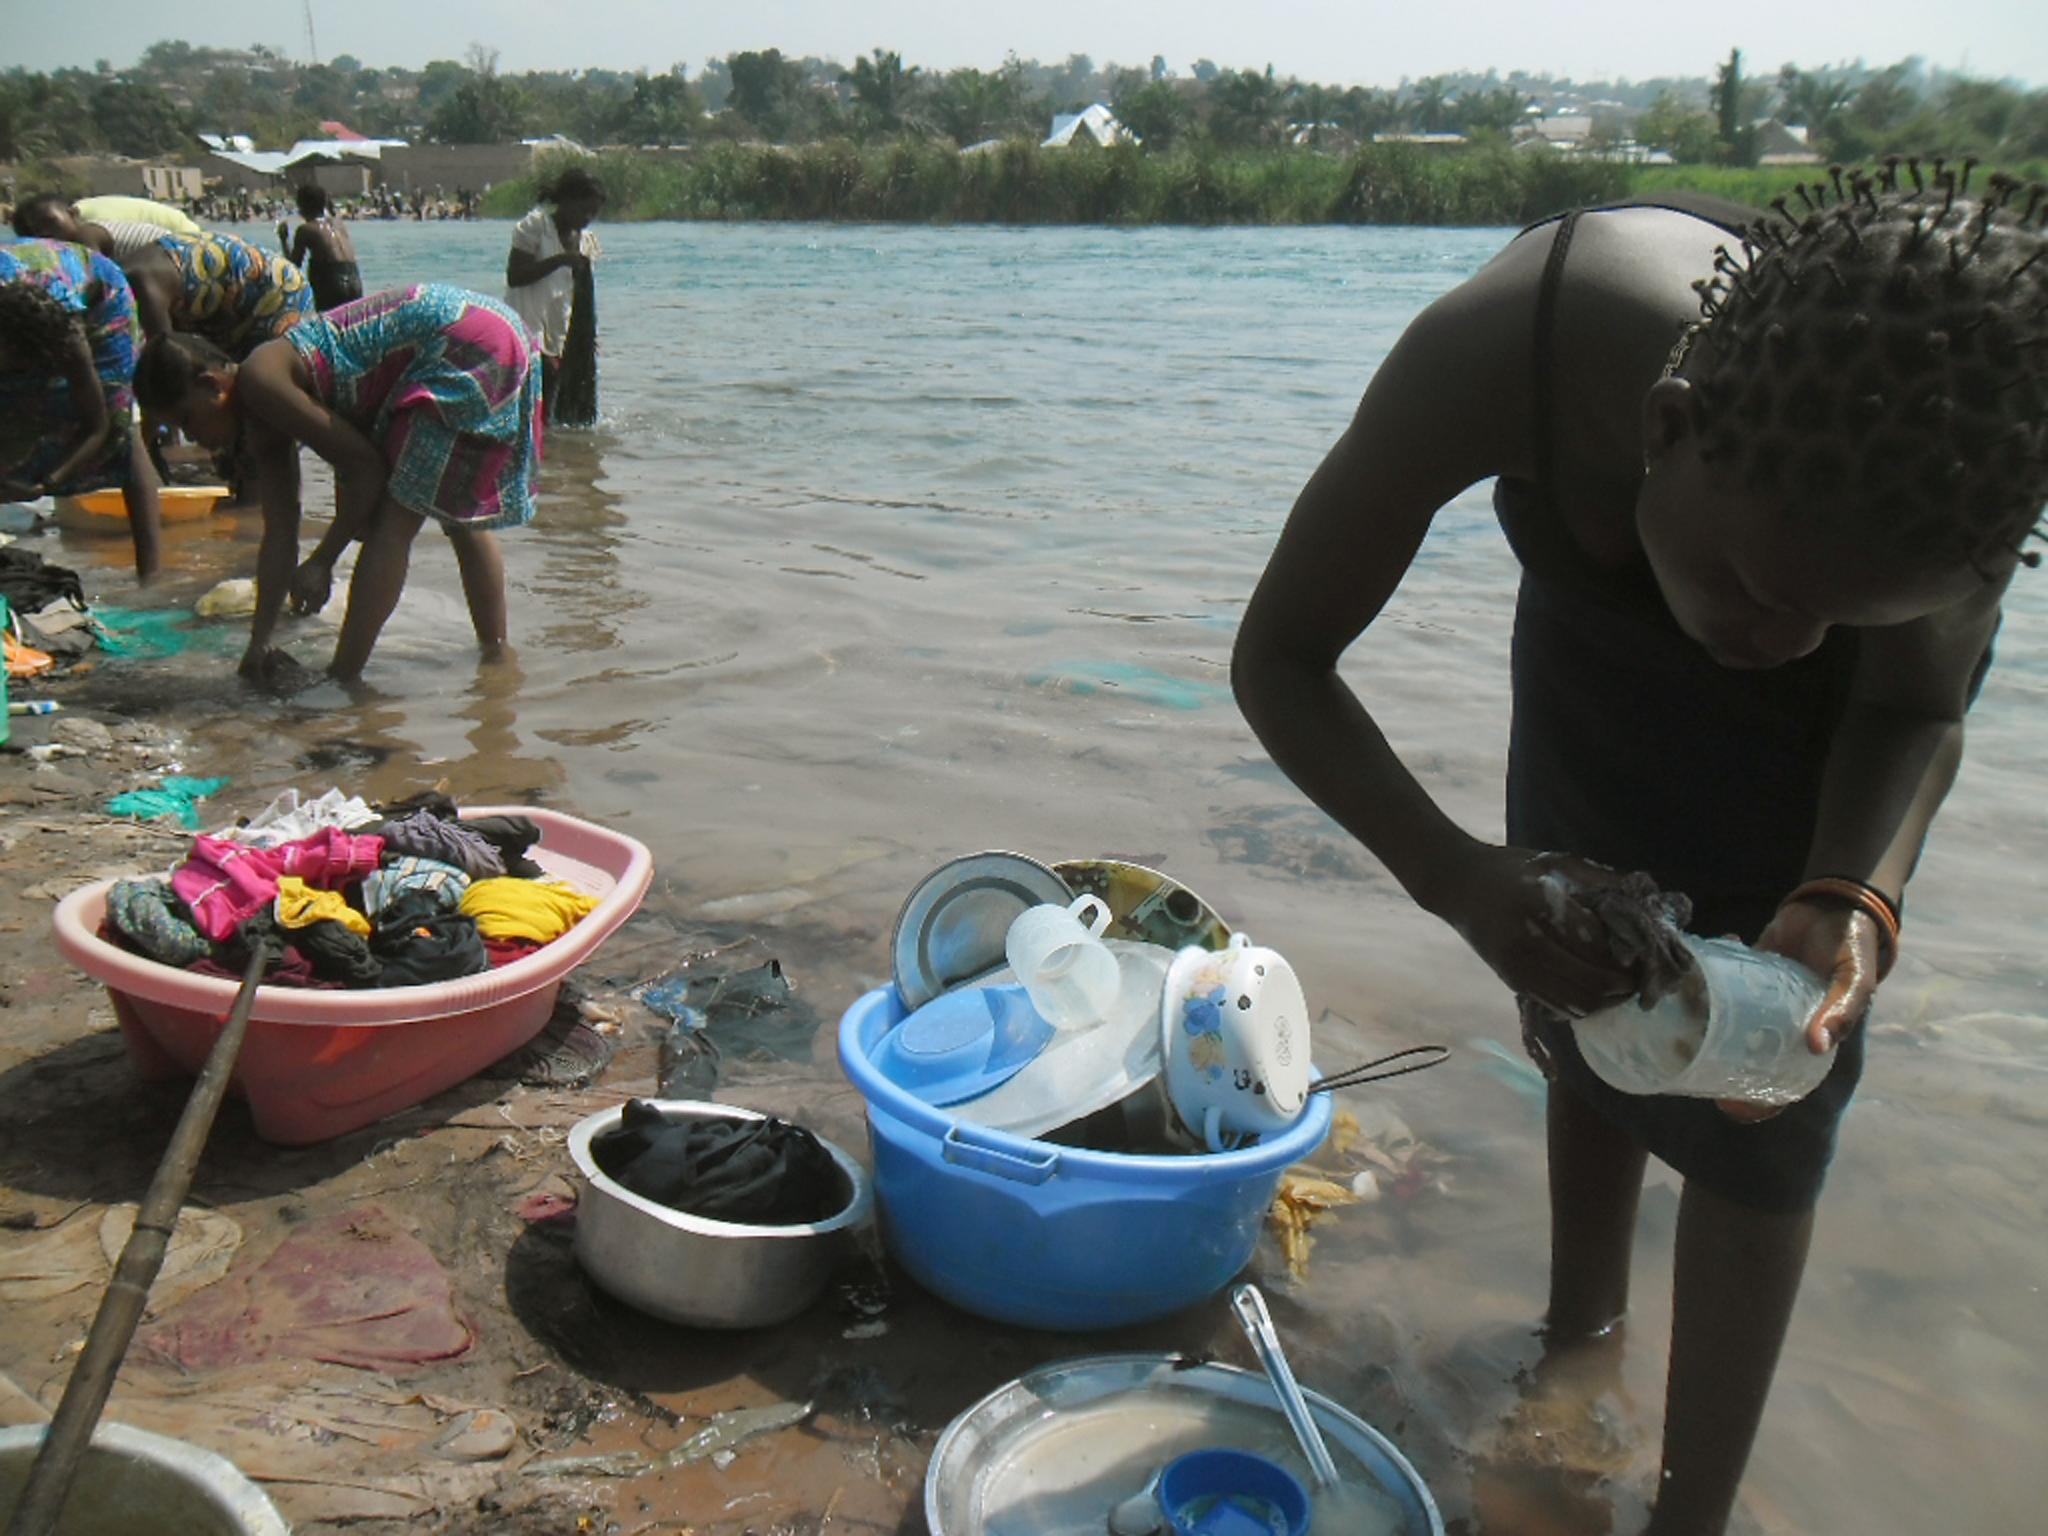 Women in Kalemie in DR Congo's Katanga province wash clothes on September 9, 2014 in the Lukaga river that runs into Lake Tanganyika (AFP Photo/Lucien Kahozi)